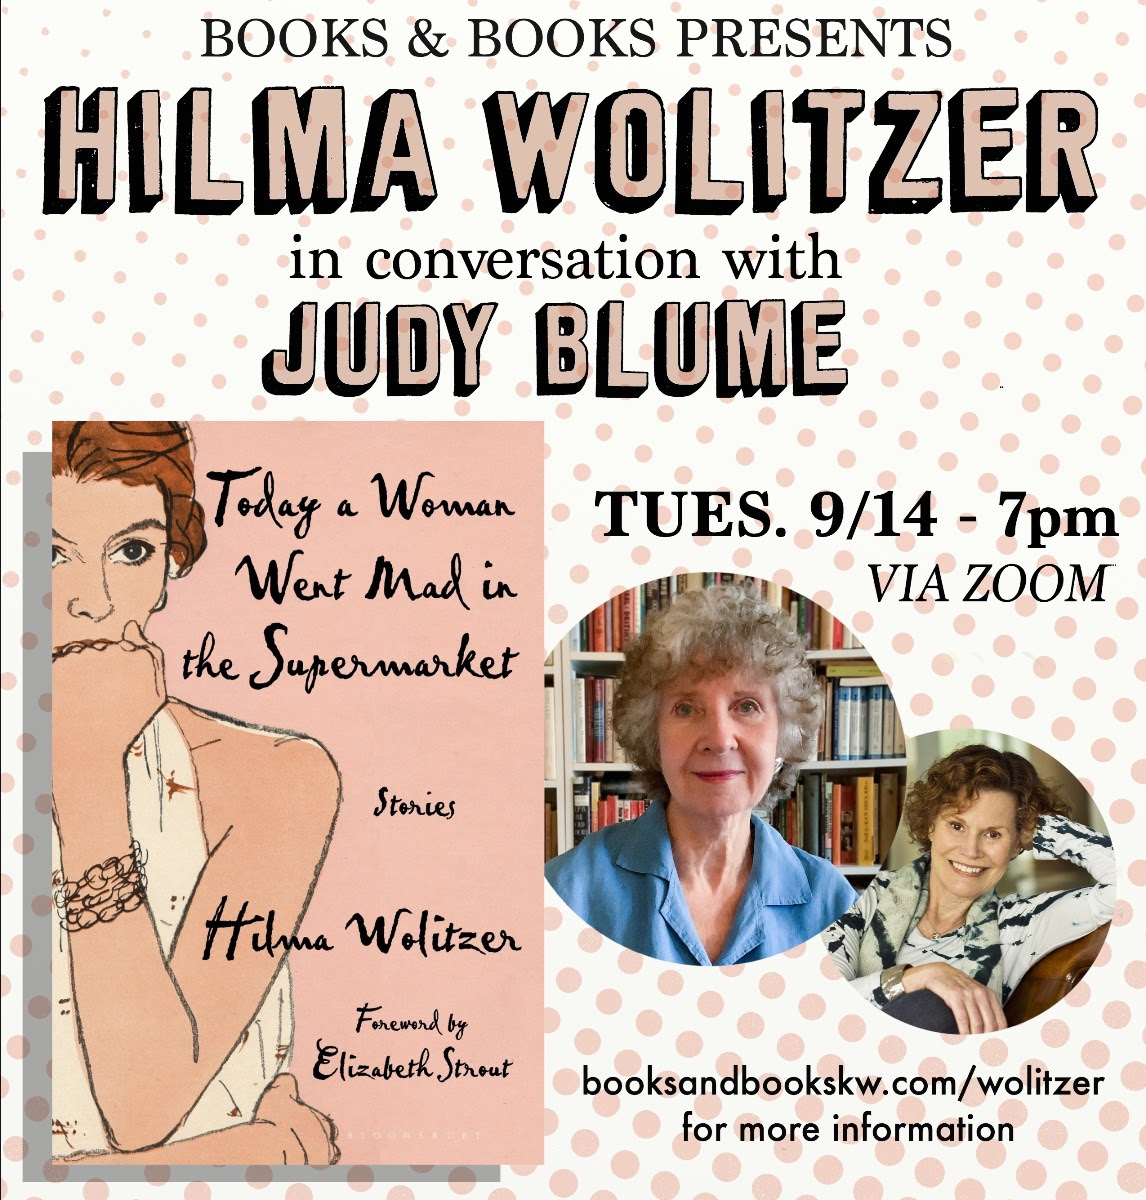 Books & Books invite you to enjoy Judy and Hilma Wolitzer's ZOOM conversation from Tuesday, September 14, 2021